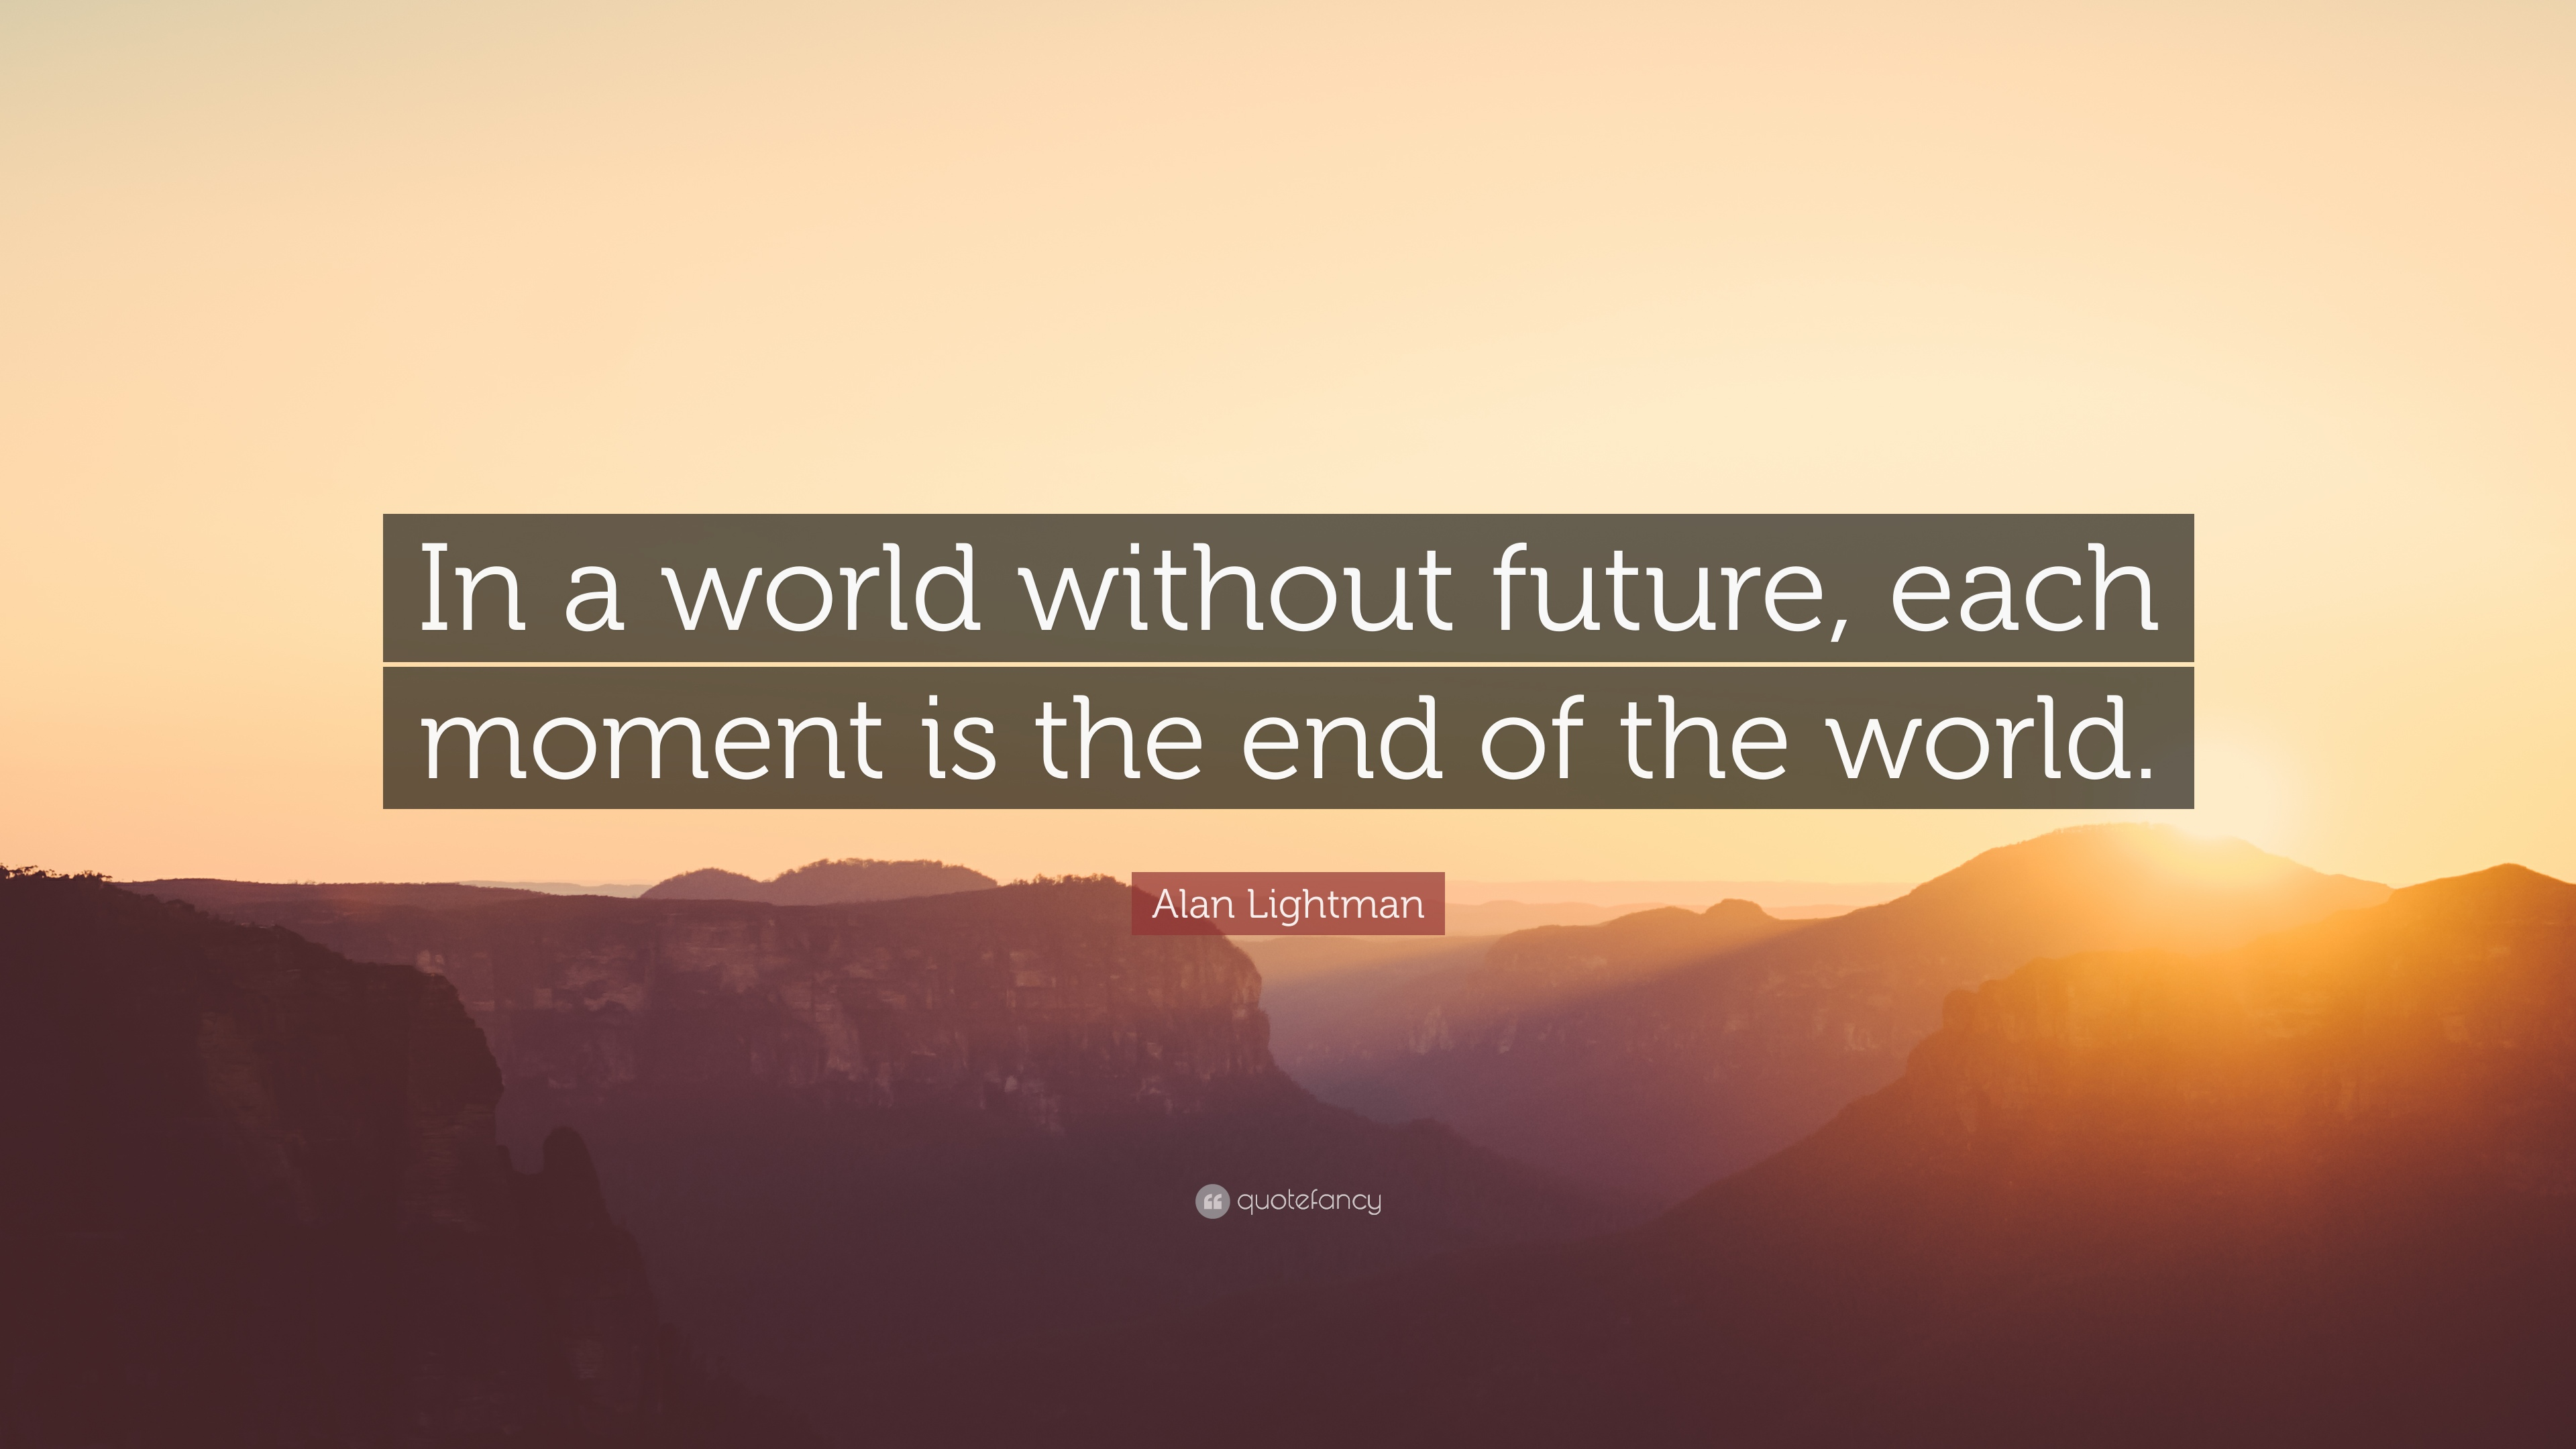 Top End Of The Fu World Quotes